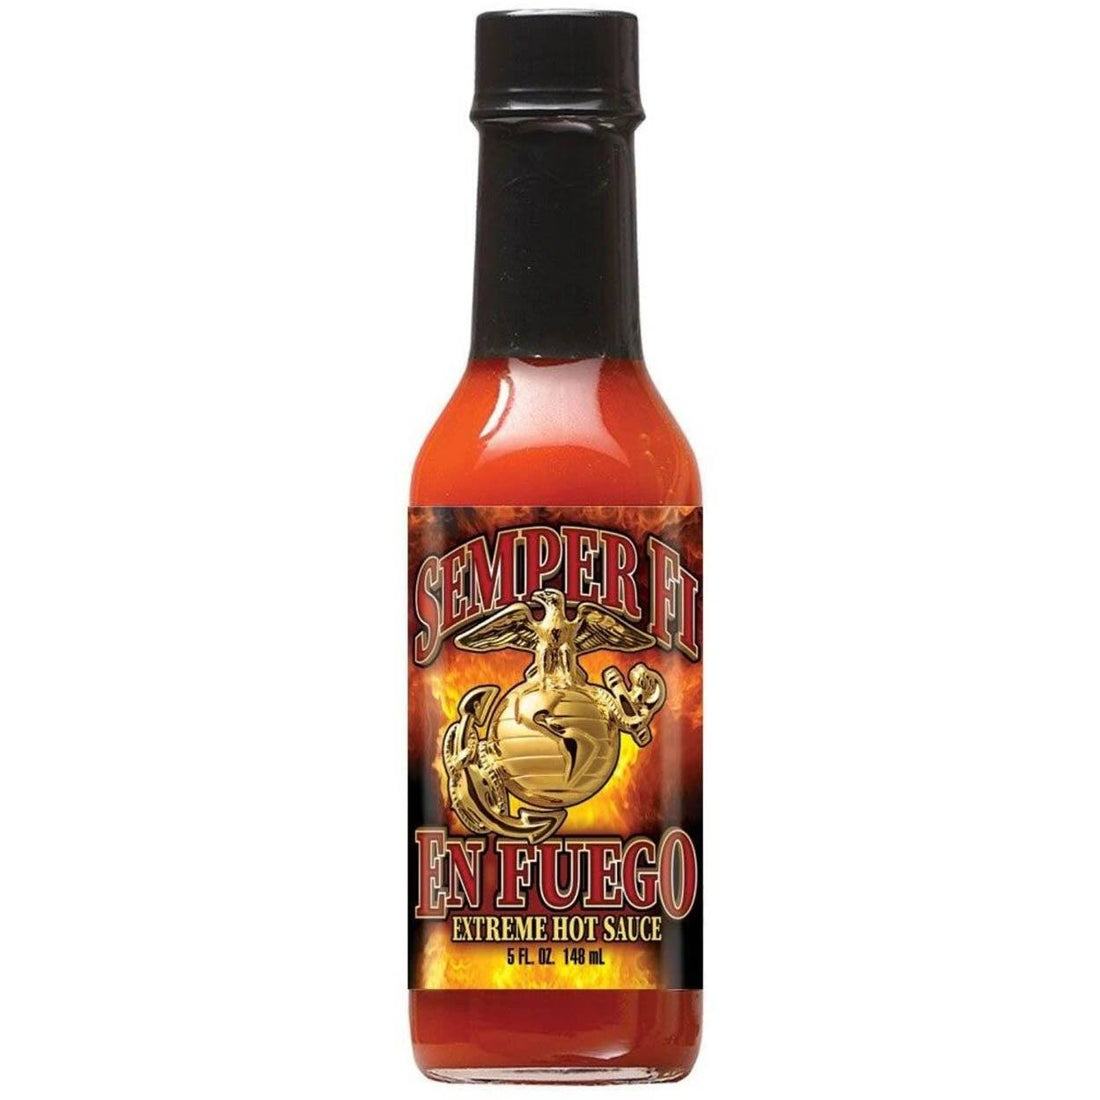 "Hot Sauce ""SEMPER FI ENFREGO"" - EXTREME HOT - Marine Corps Direct"